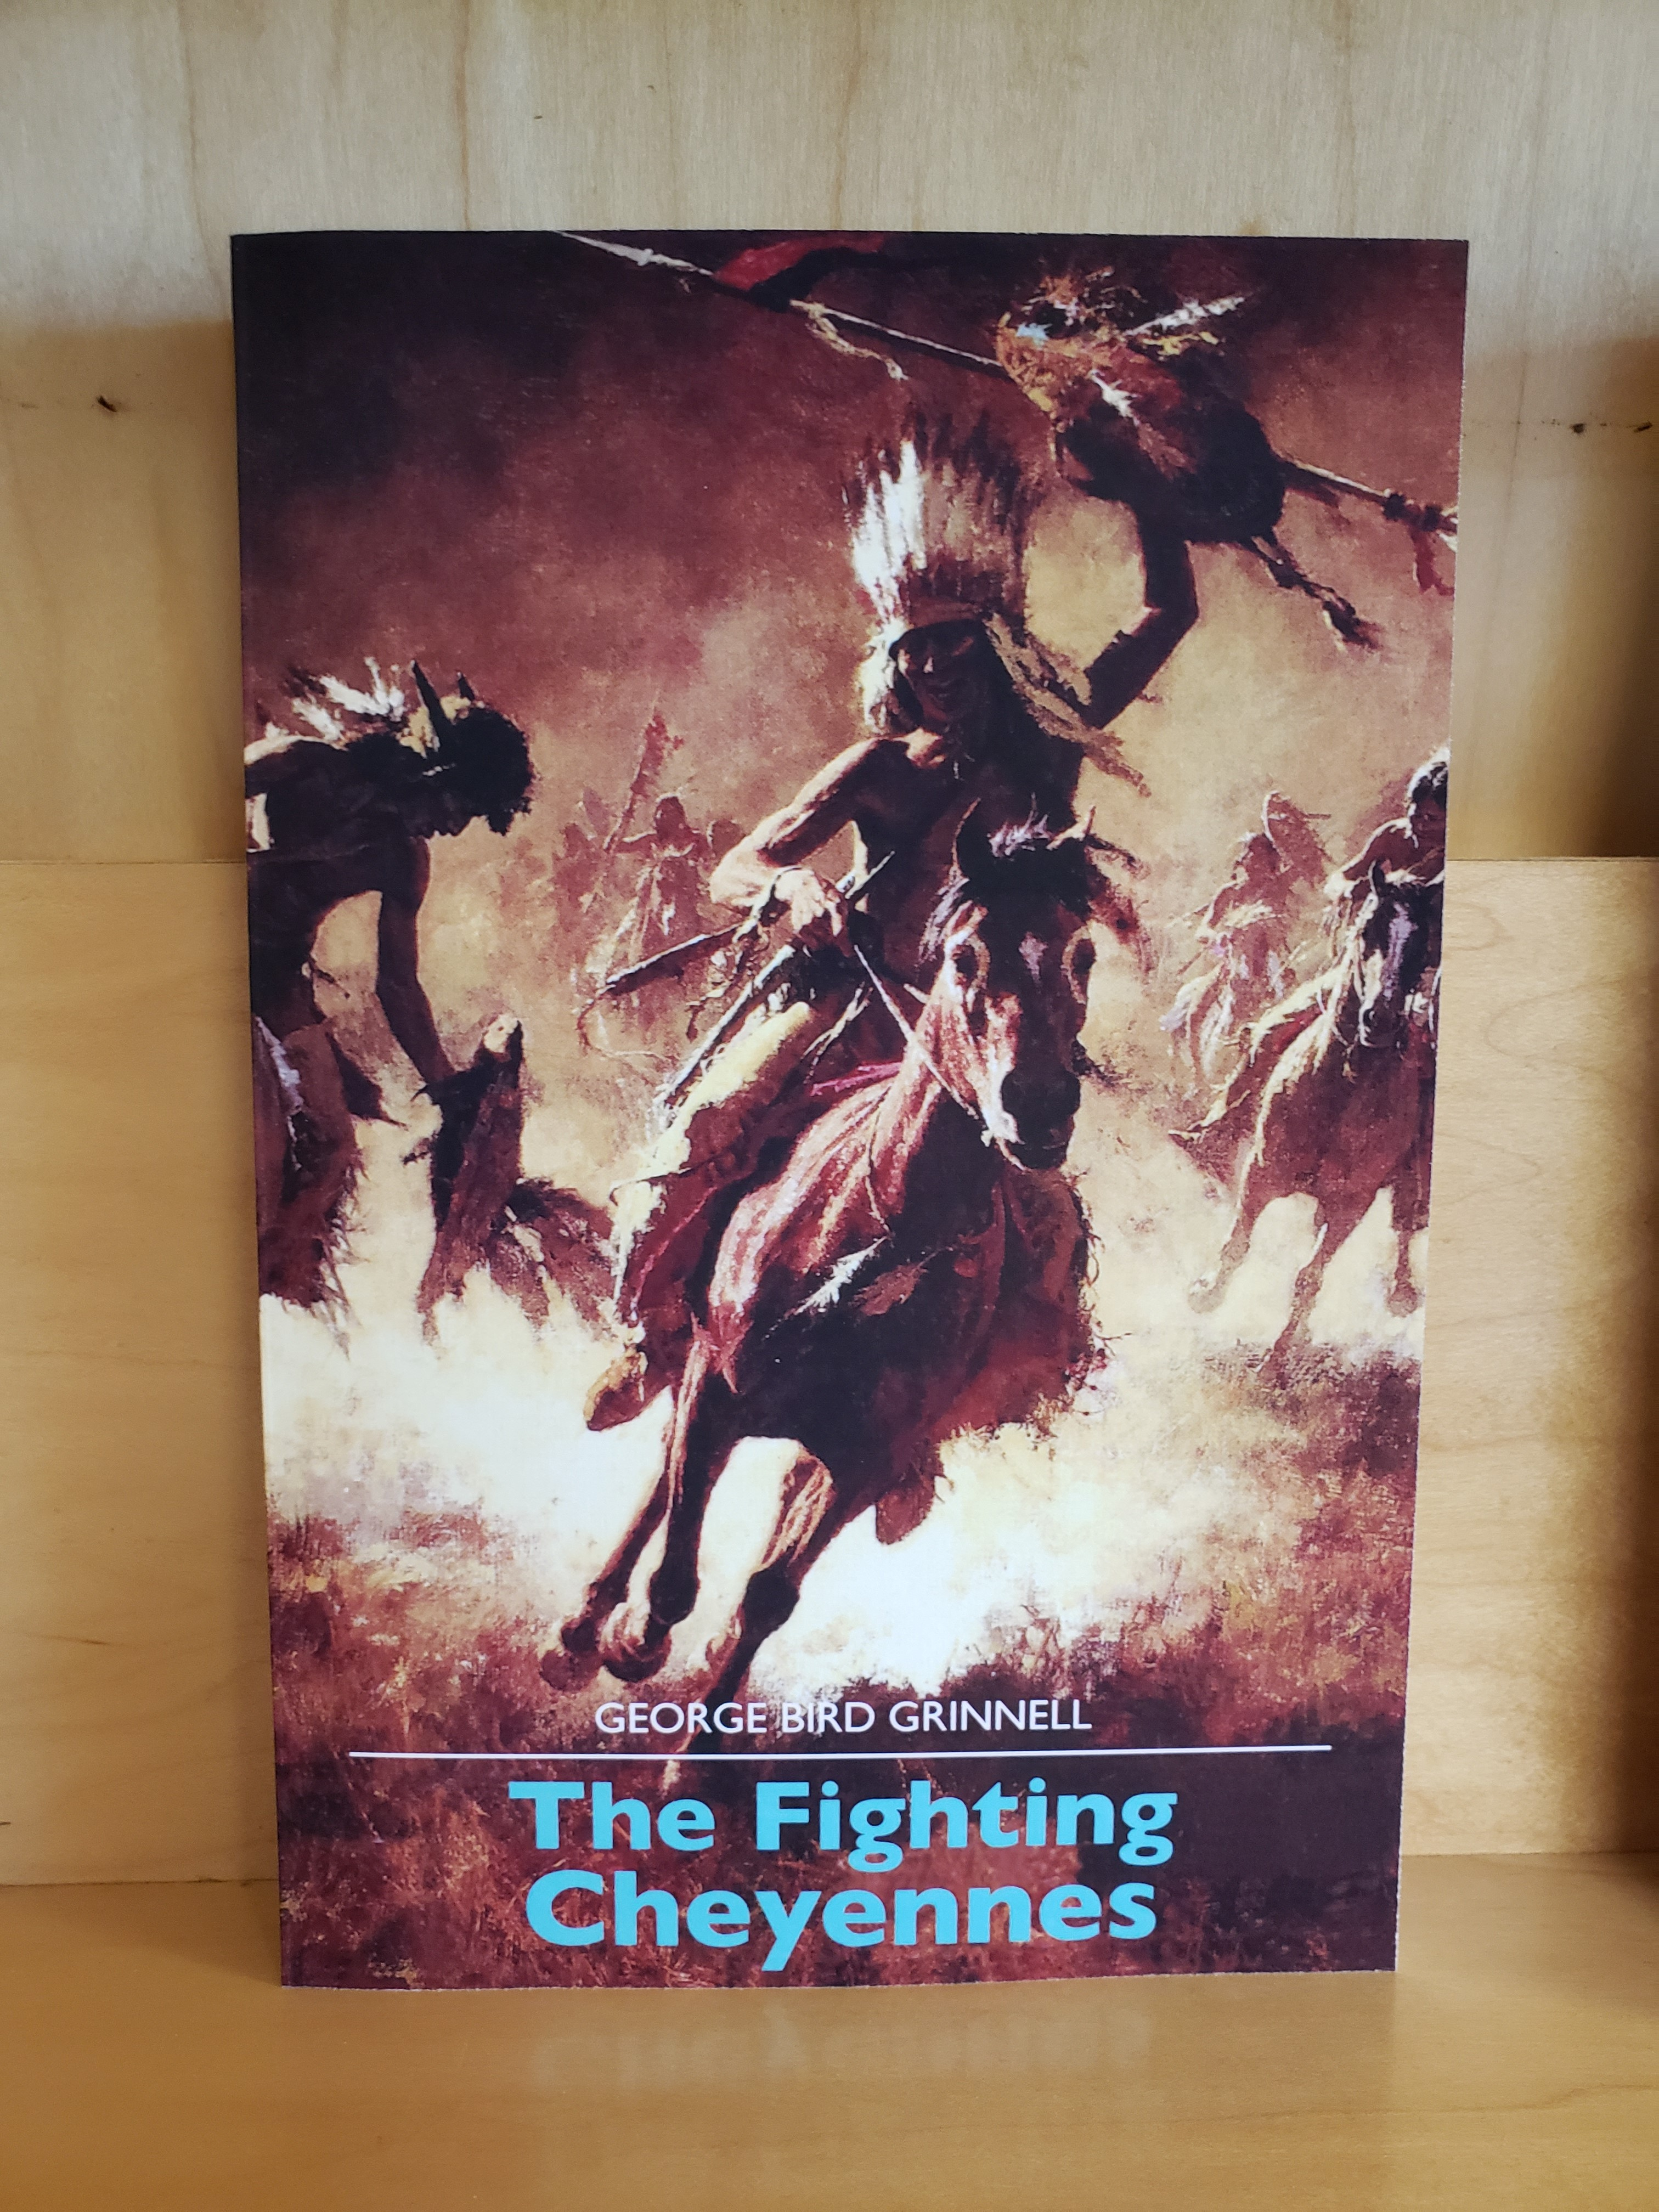 A Ledgerbook History of Coups and Combat Cheyenne Dog Soldiers